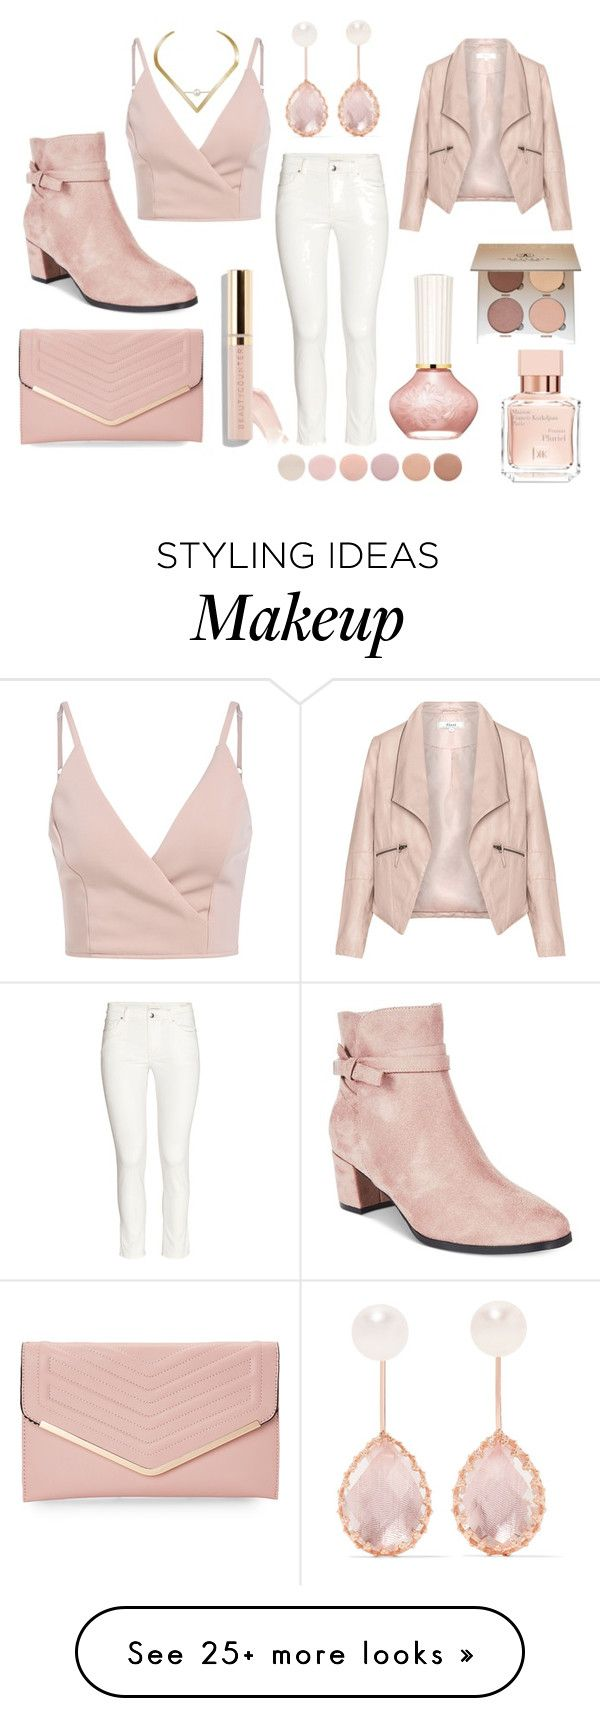 """For The Ladies"" by ivy-magik on Polyvore featuring Impo, Maison Francis Kurkdjian, Beautycounter, Sasha, Deborah Lippmann, Paul & Joe, Anastasia Beverly Hills, H&M, Larkspur & Hawk and Edge of Ember"